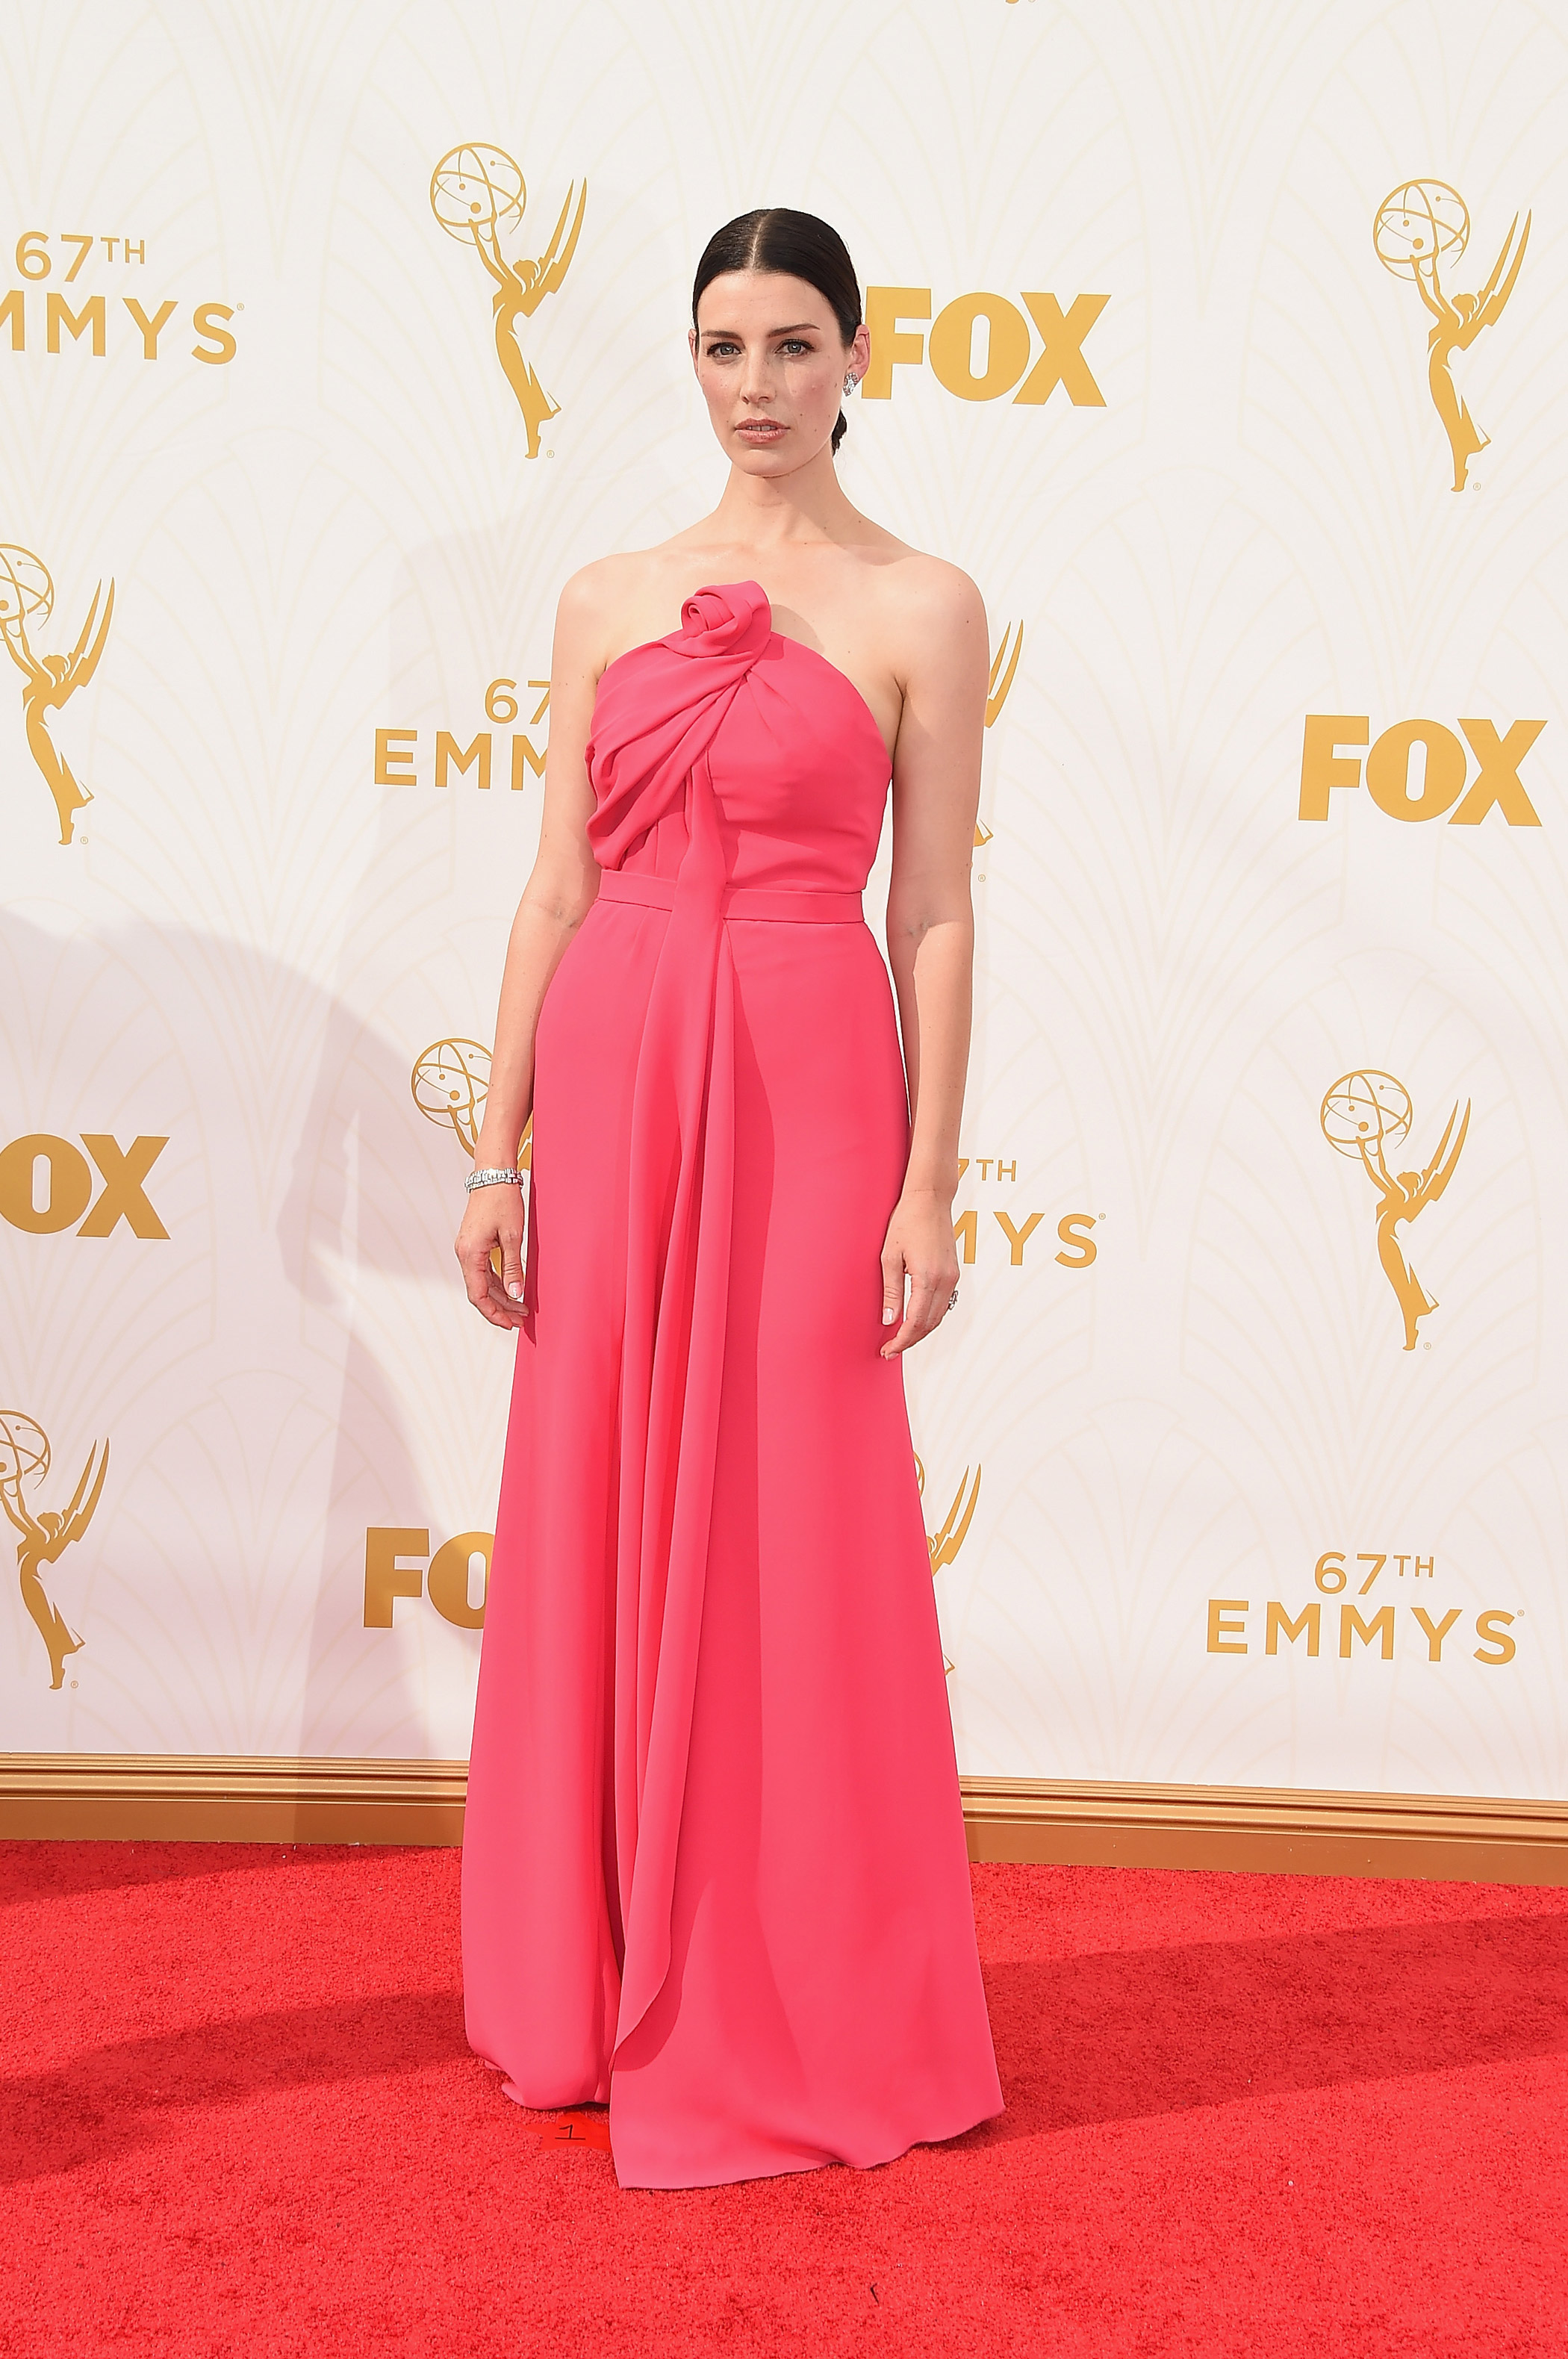 Jessica Pare attends the 67th Annual Primetime Emmy Awards on Sept. 20, 2015 in Los Angeles.